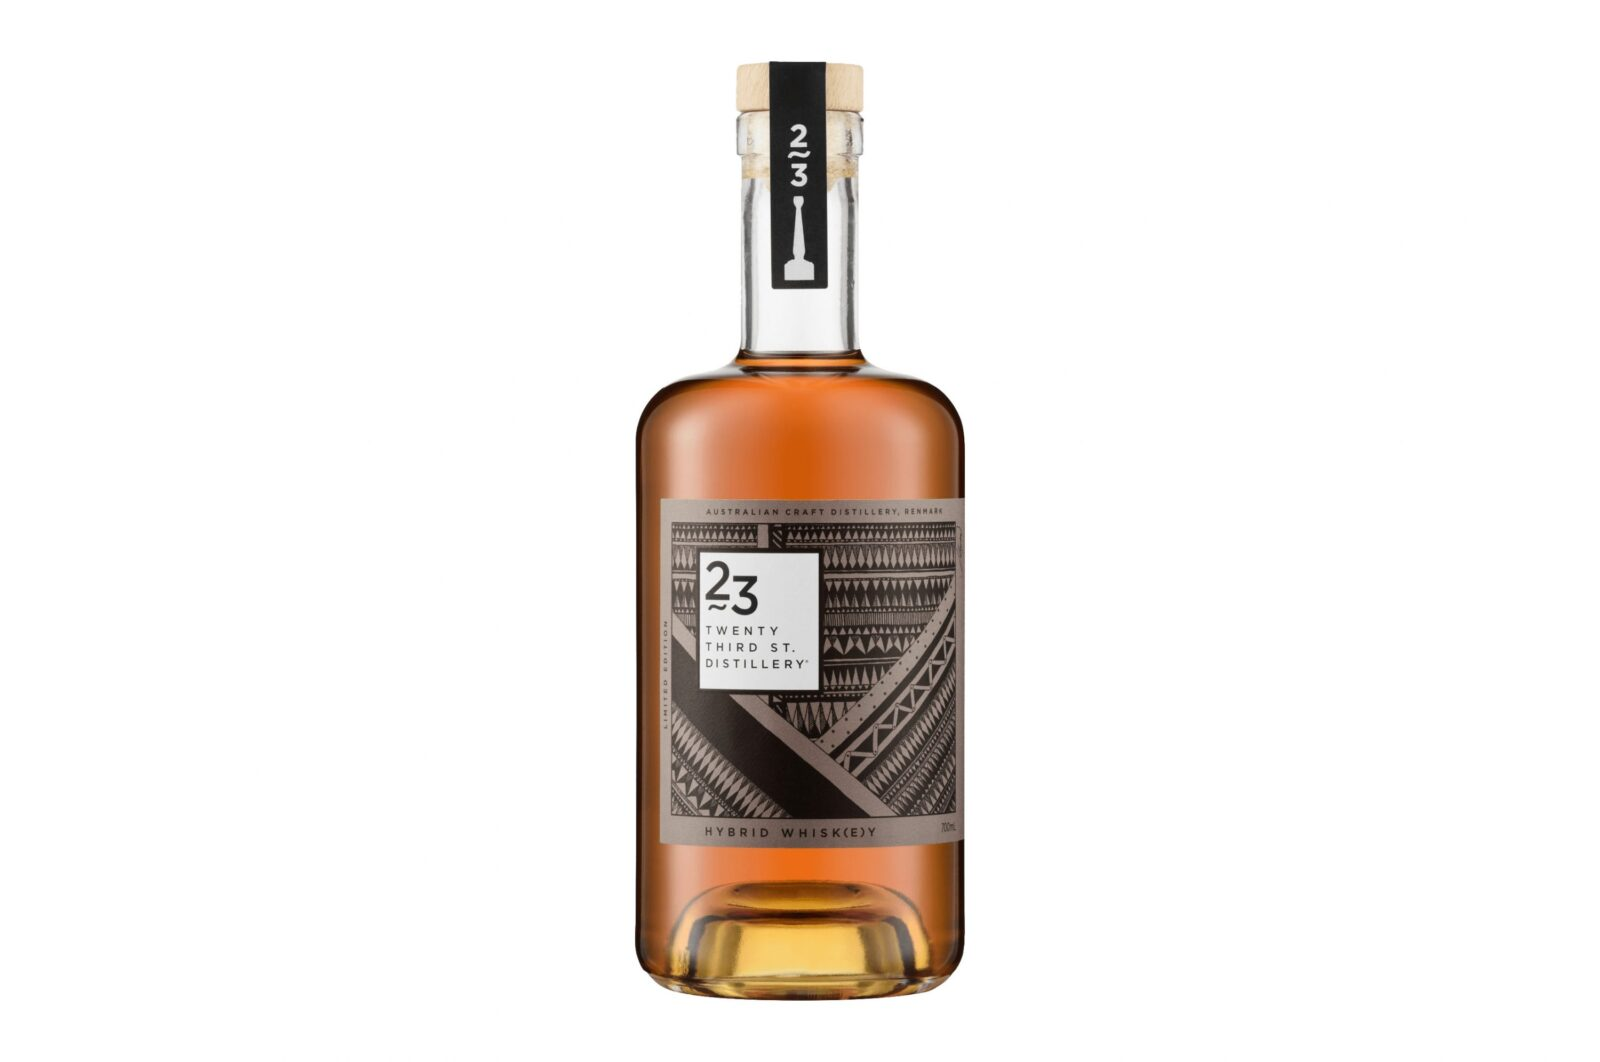 Twenty Third Street Distillery Hybrid Whiskey 1600x1062 - Twenty Third Street Distillery Hybrid Whisk(e)y